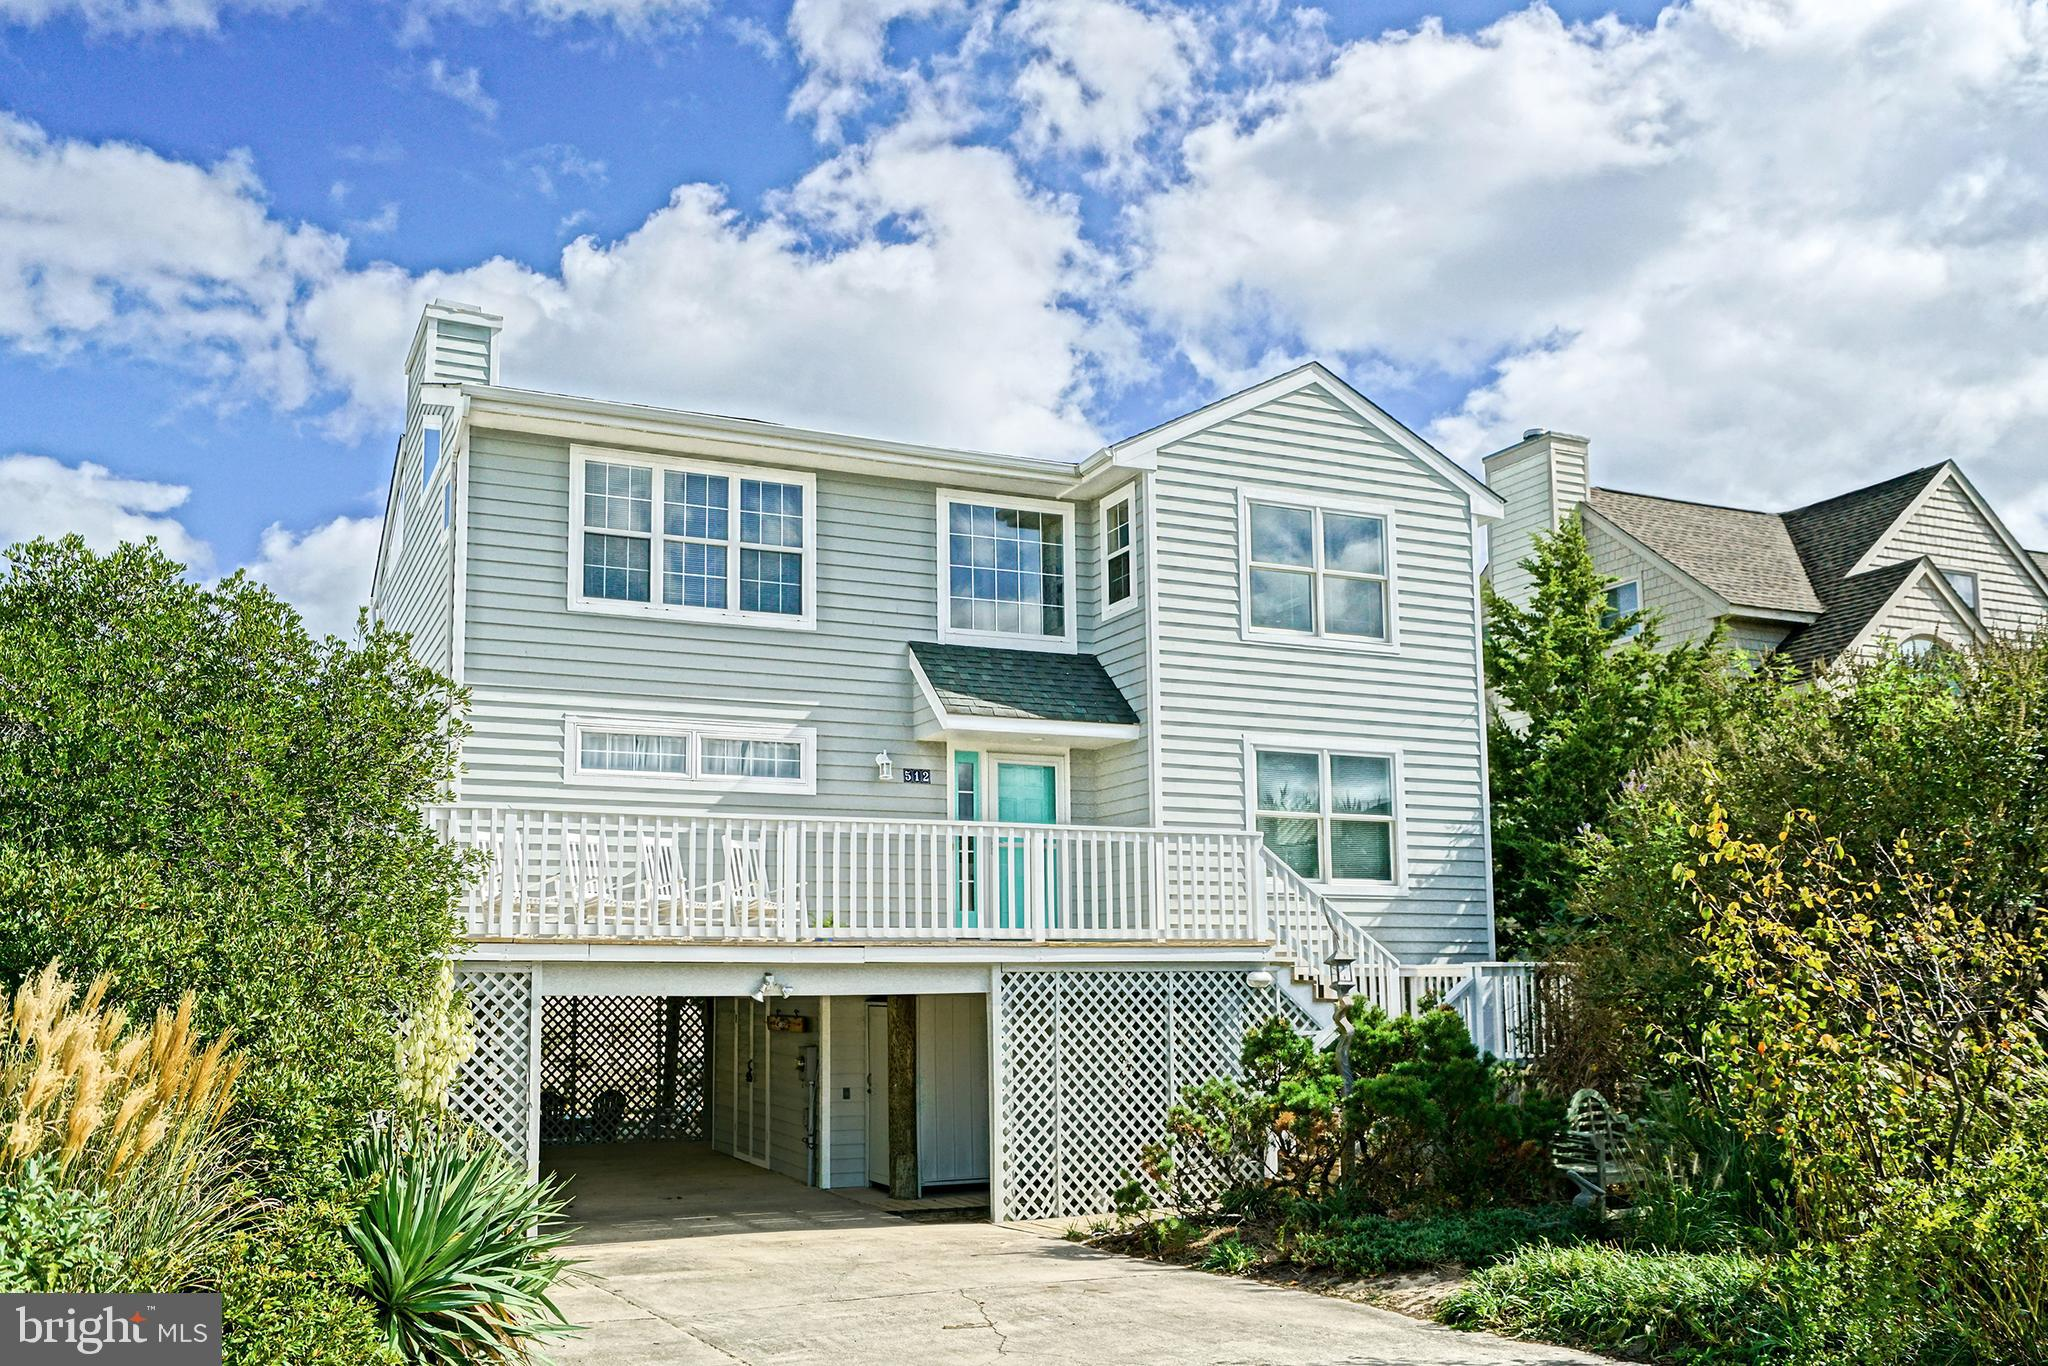 PANORAMIC VIEWS OF THE BAY & CAPE HENLOPEN STATE PARK! This Cape Shores beach home located just step